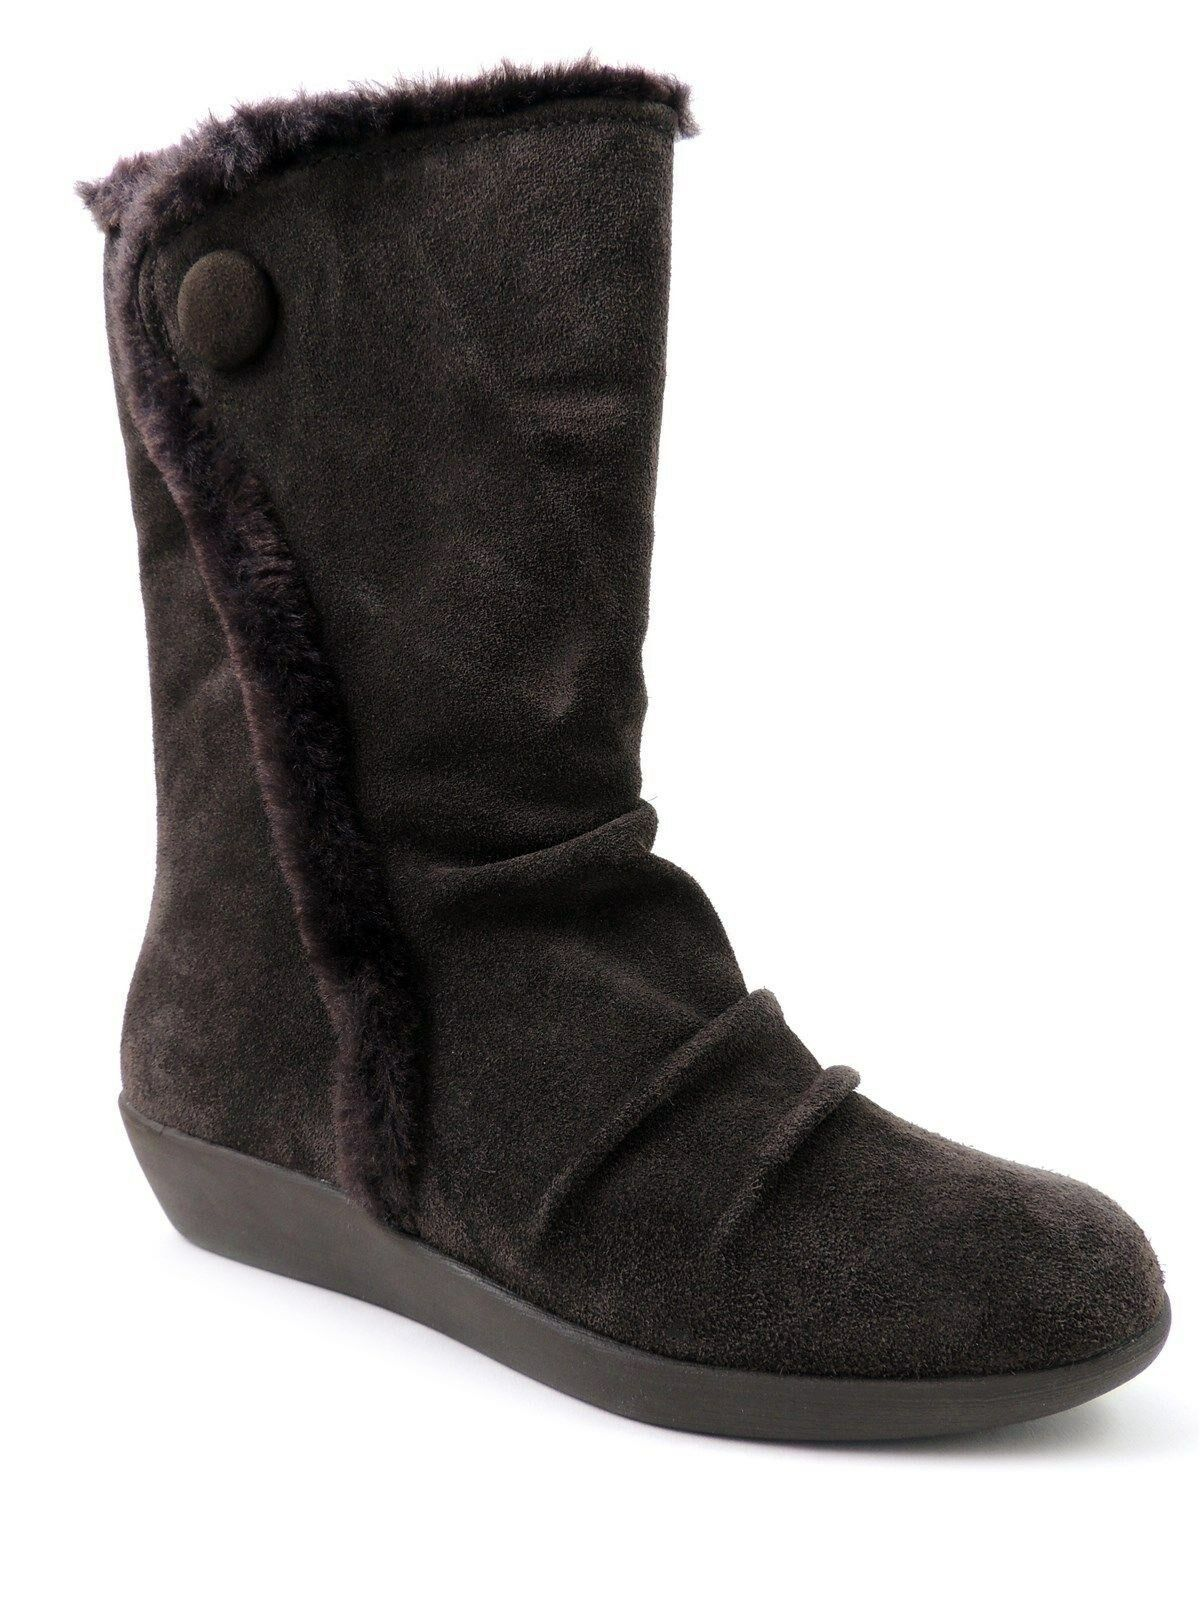 Giani Bernini Women's Sicilia Cold Weather Boots Brown Suede & Faux Fur Size 8